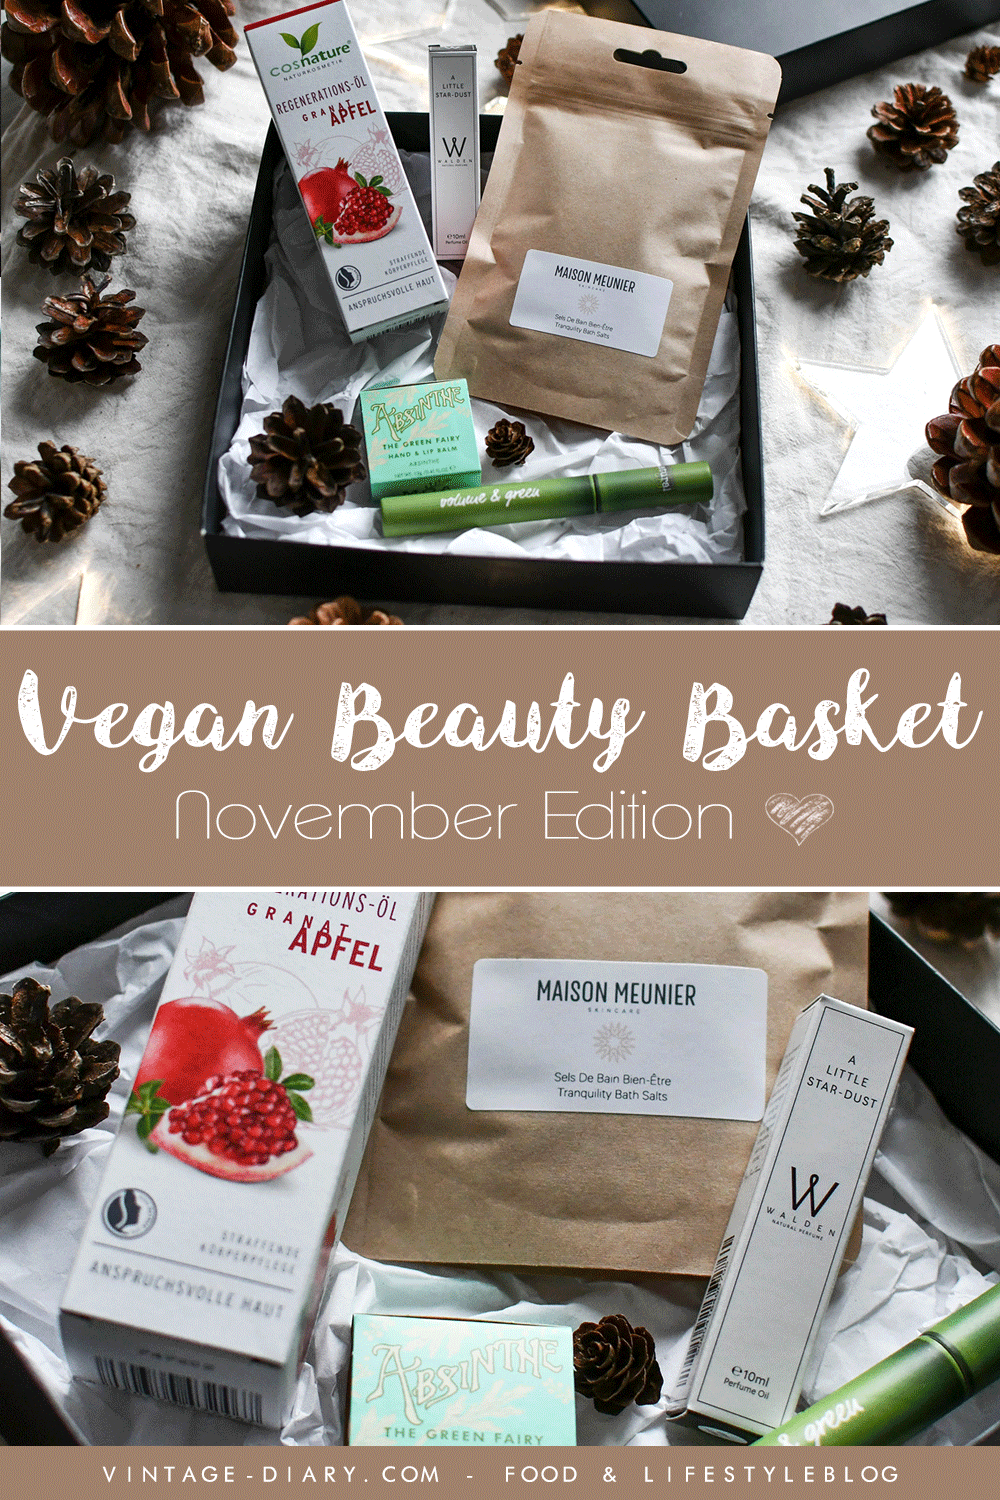 Vegan-Beauty-Basket-November-Edition-Giveaway